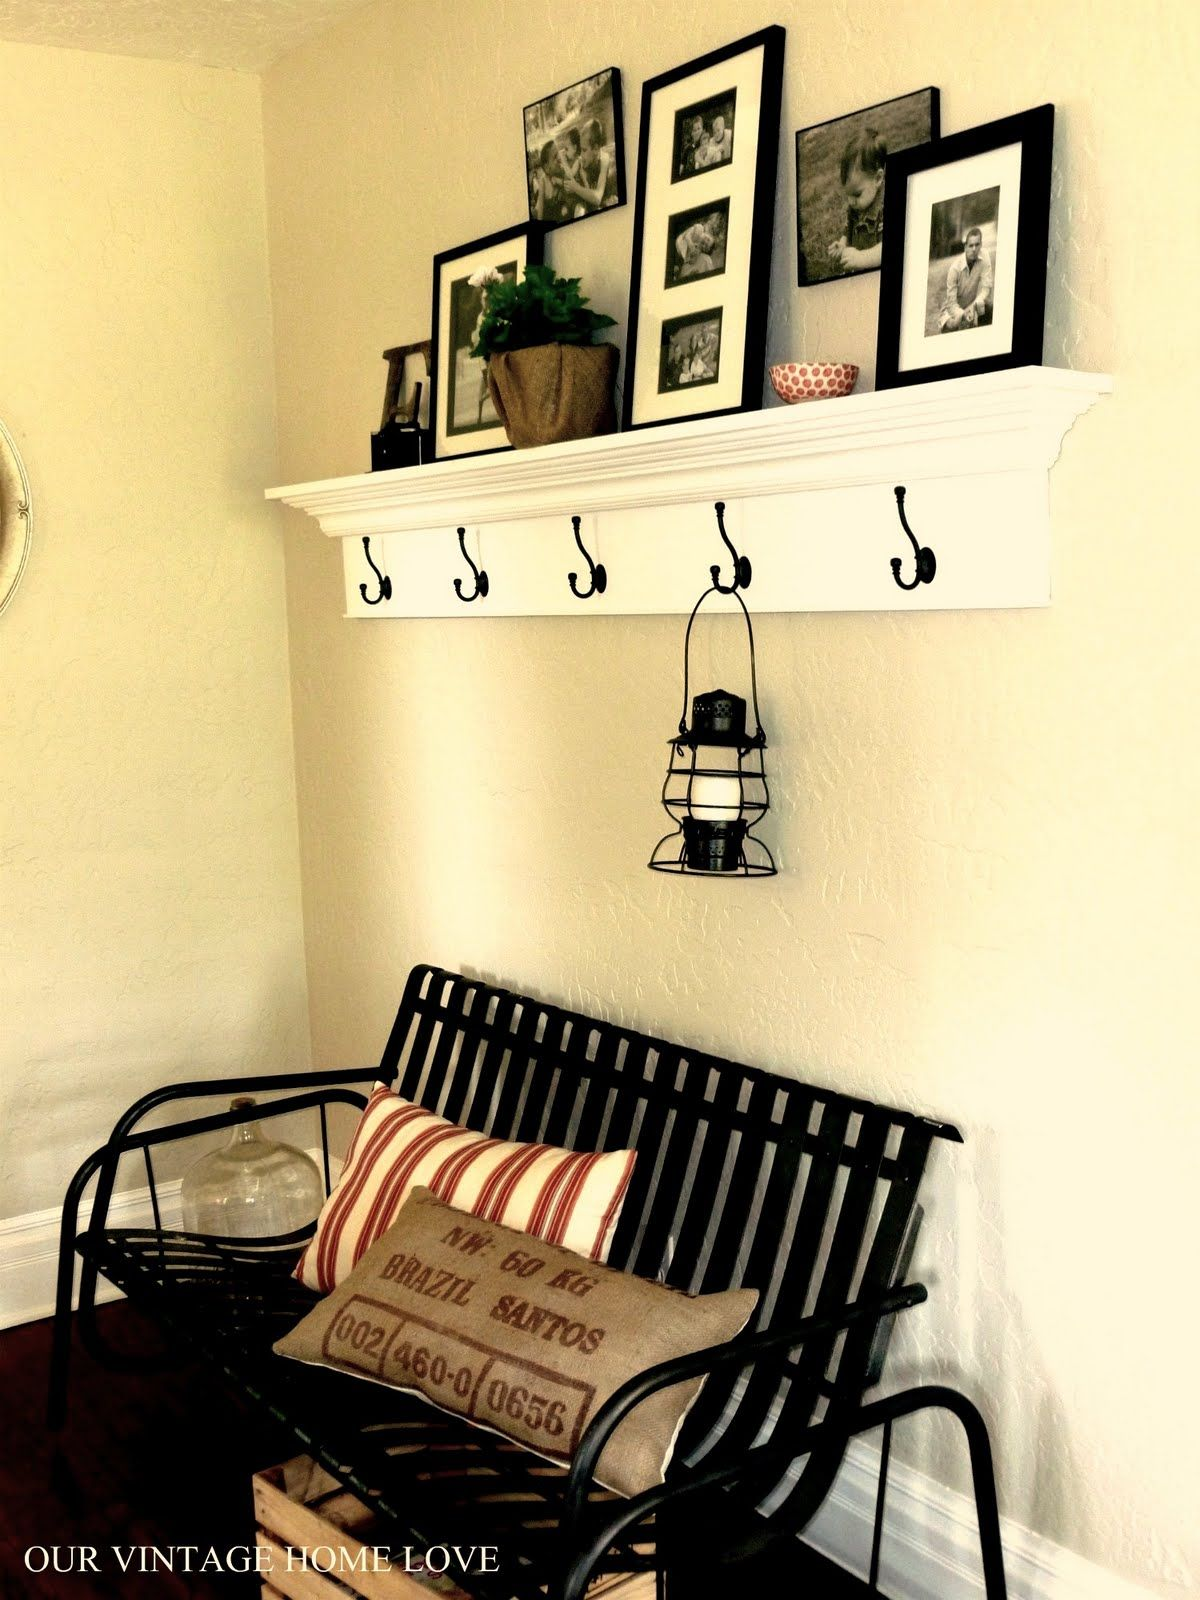 I want to make shelves like this! : Our Vintage Home Love: Cottage ...